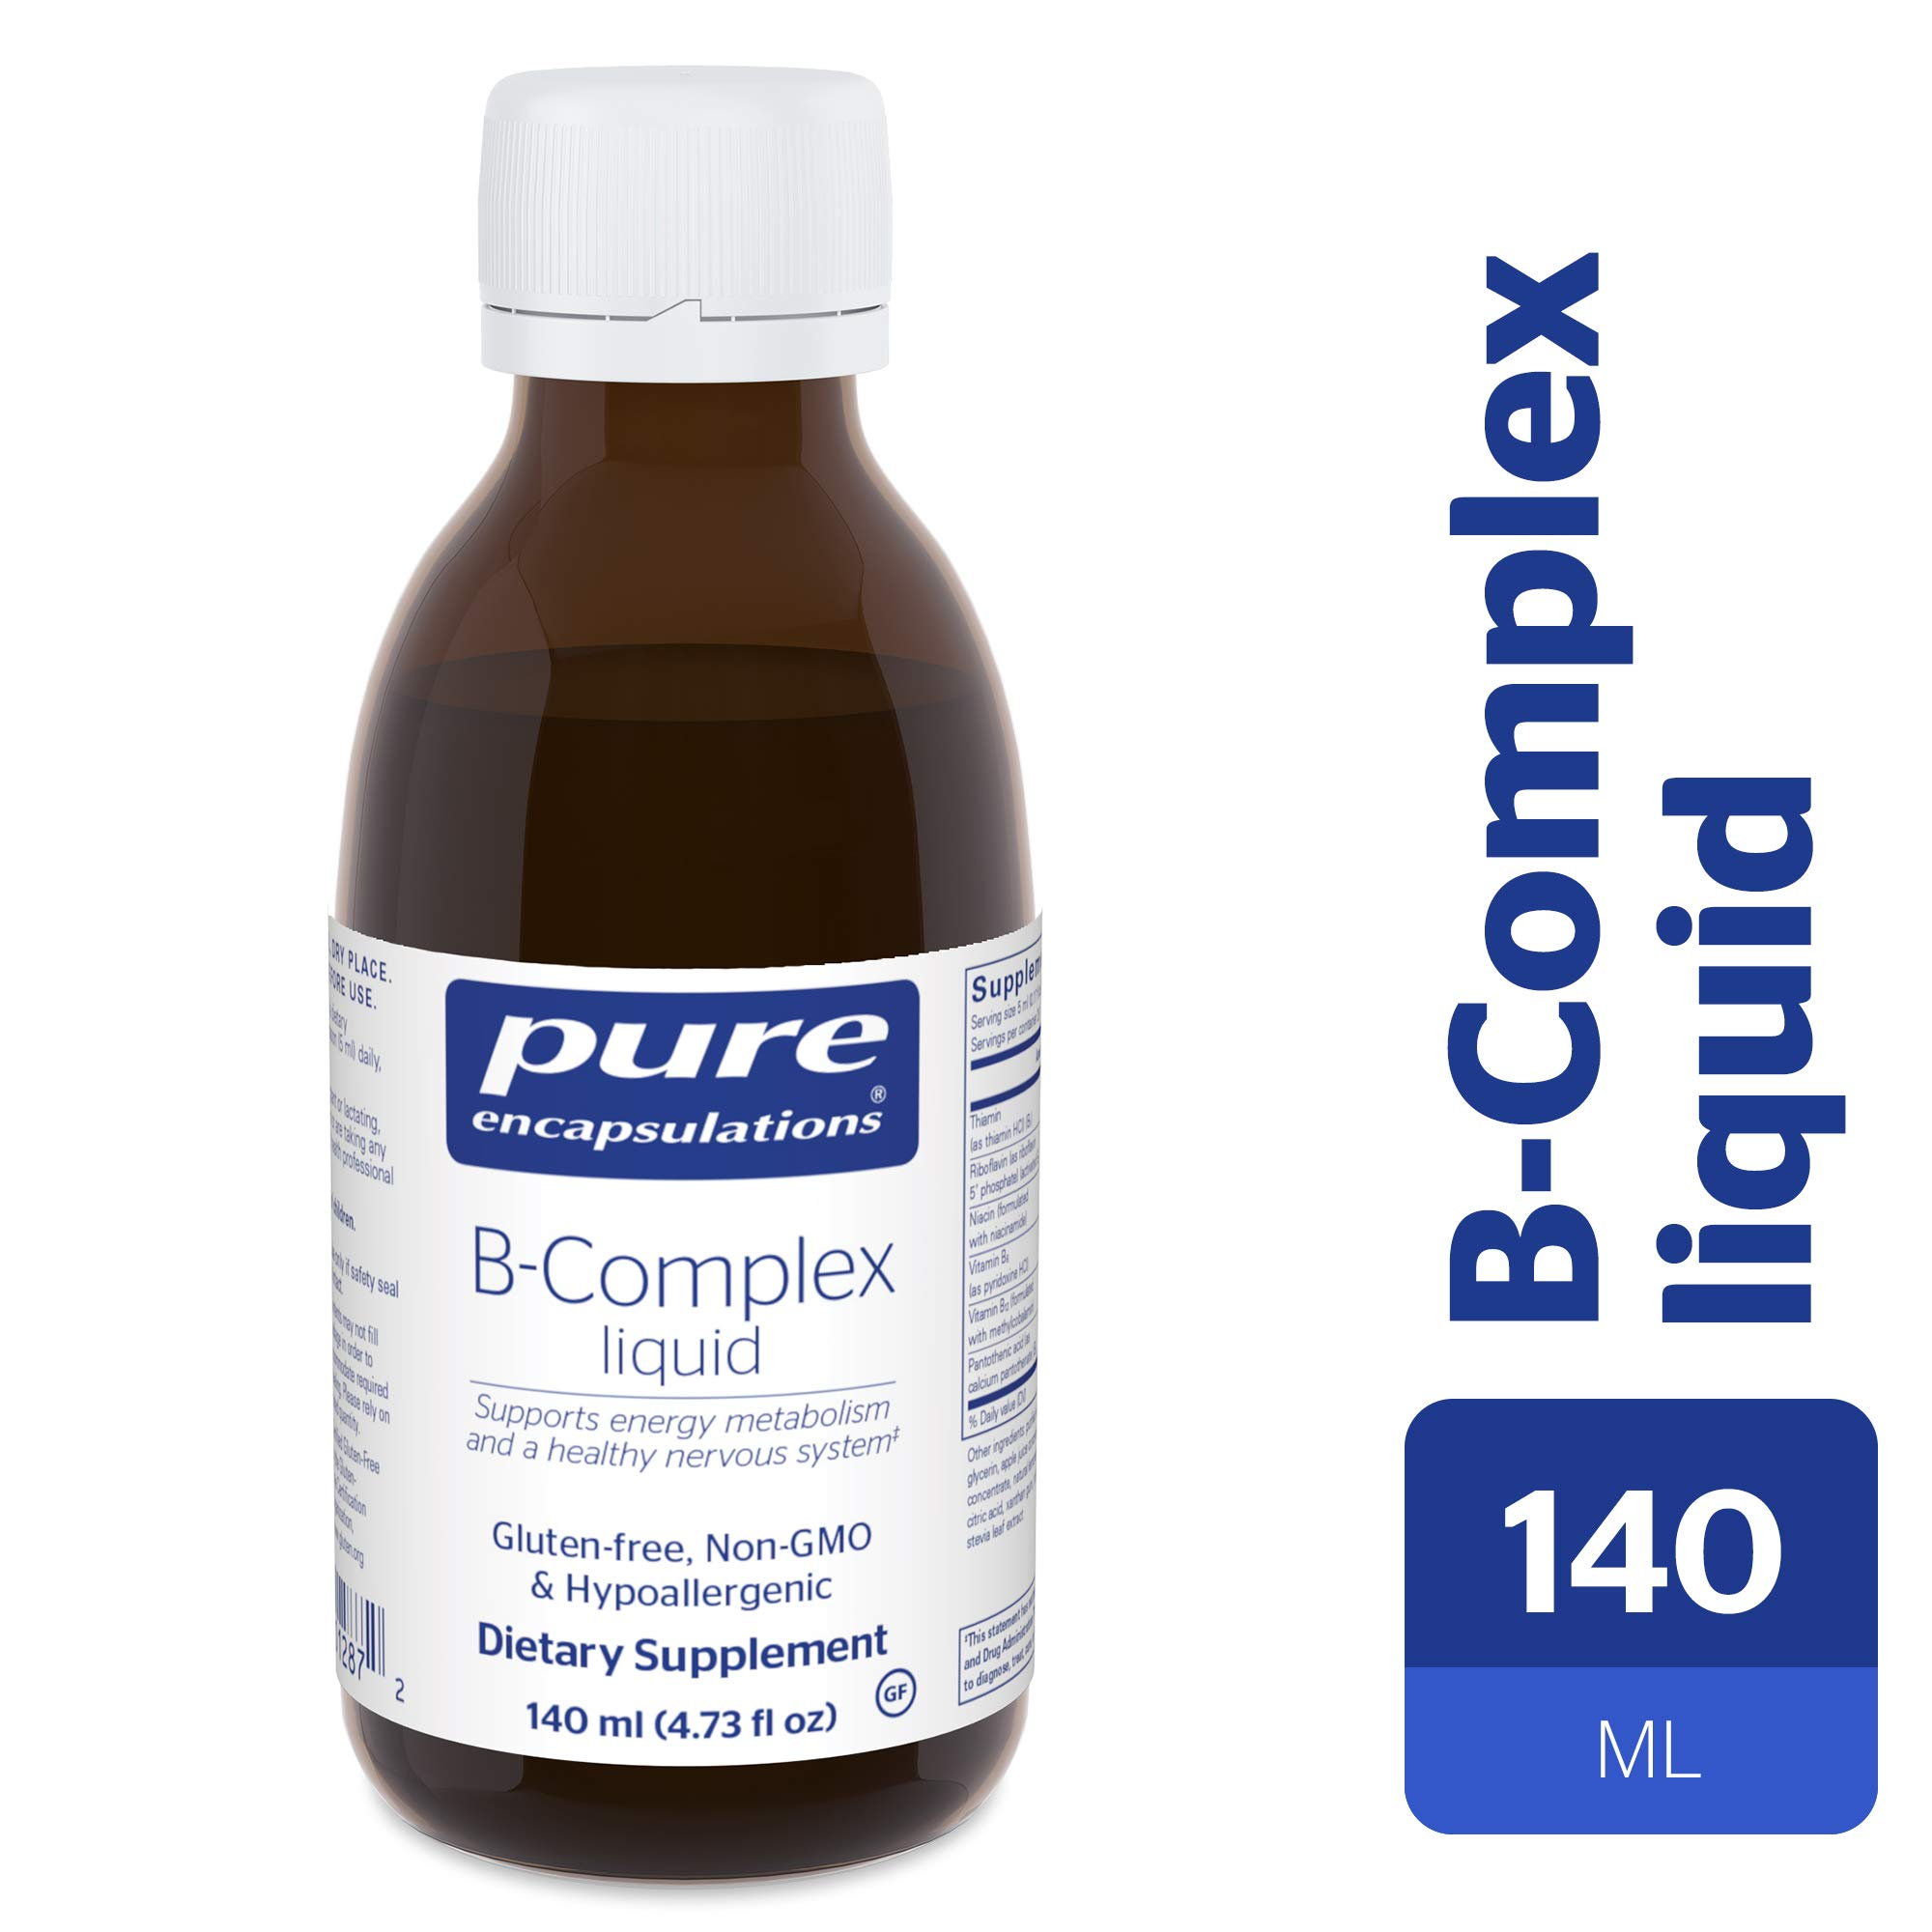 Pure Encapsulations - B-Complex Liquid - B Vitamins to Support Energy Metabolism and a Healthy Nervous System* - 140 ml (4.73 fl oz) by Pure Encapsulations